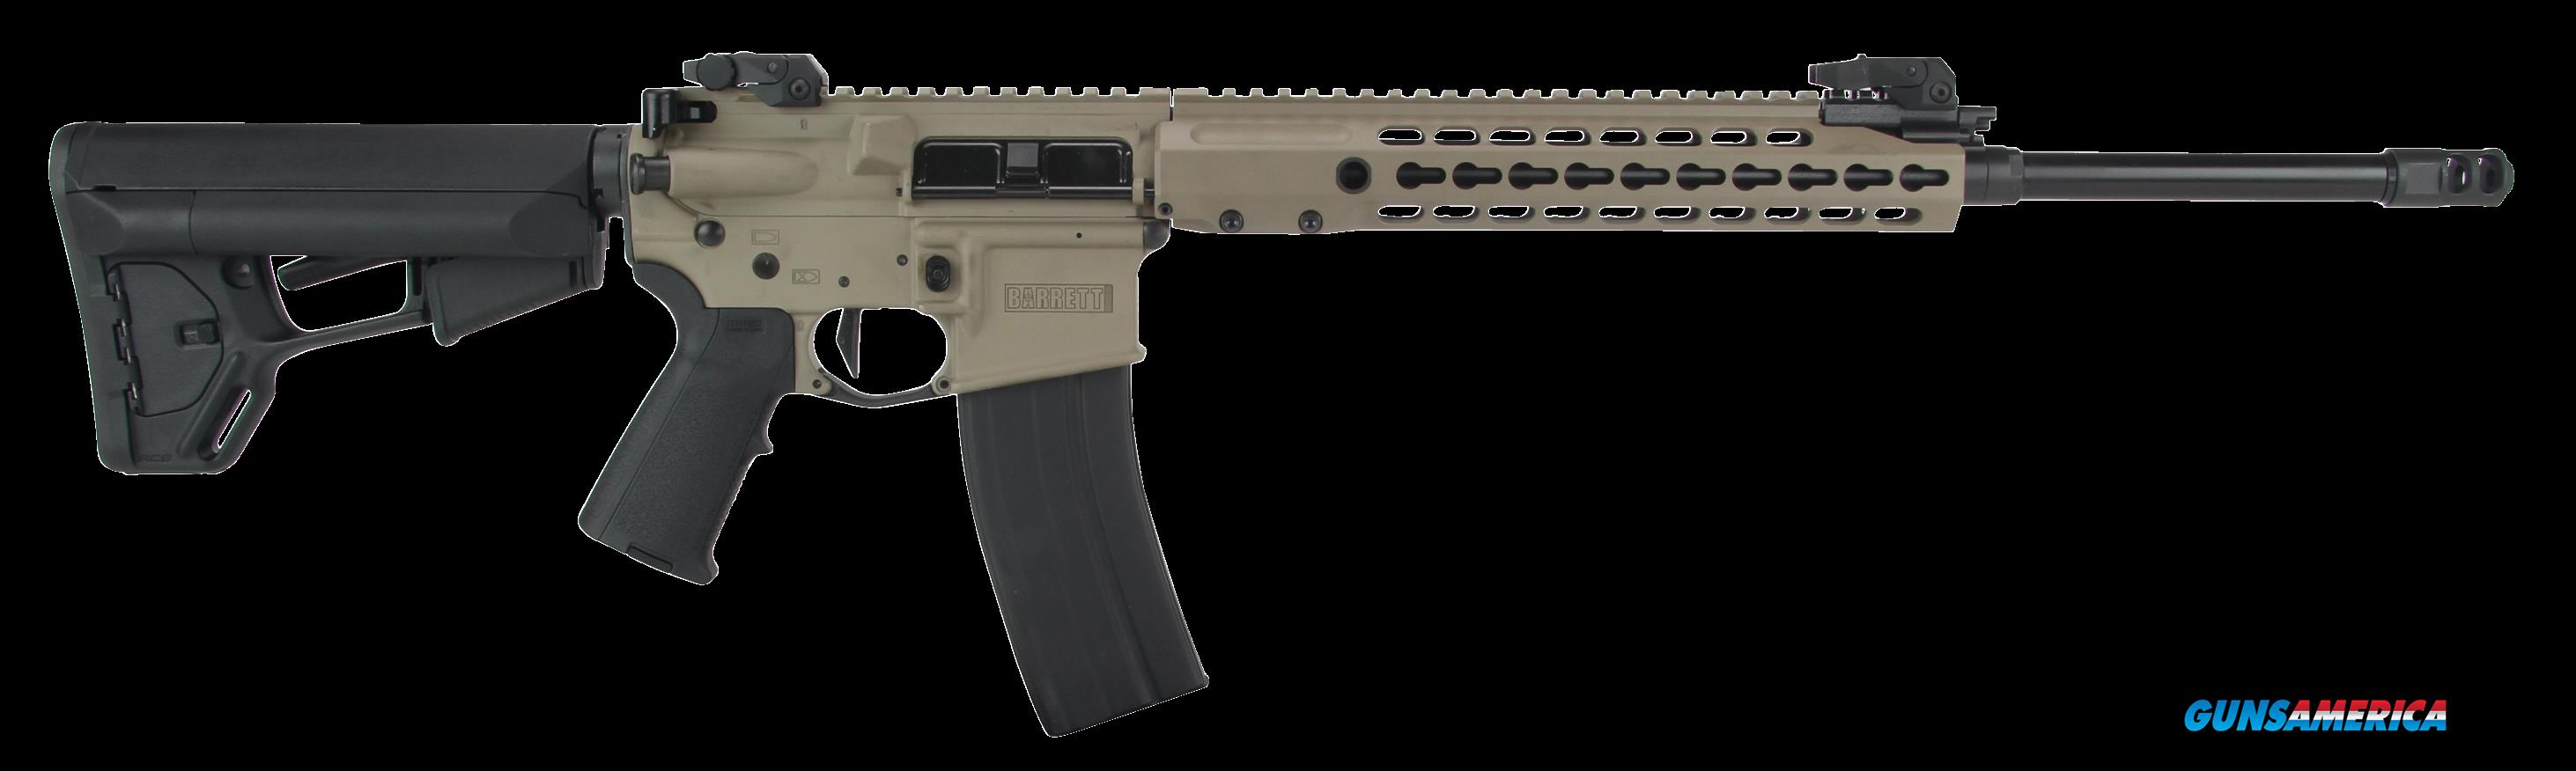 "Barrett 14953 REC 7 Gen II Semi-Automatic 223 Remington/5.56 NATO 18"" 30+1 Magpul MOE Blk Stk Flat  Guns > Rifles > B Misc Rifles"